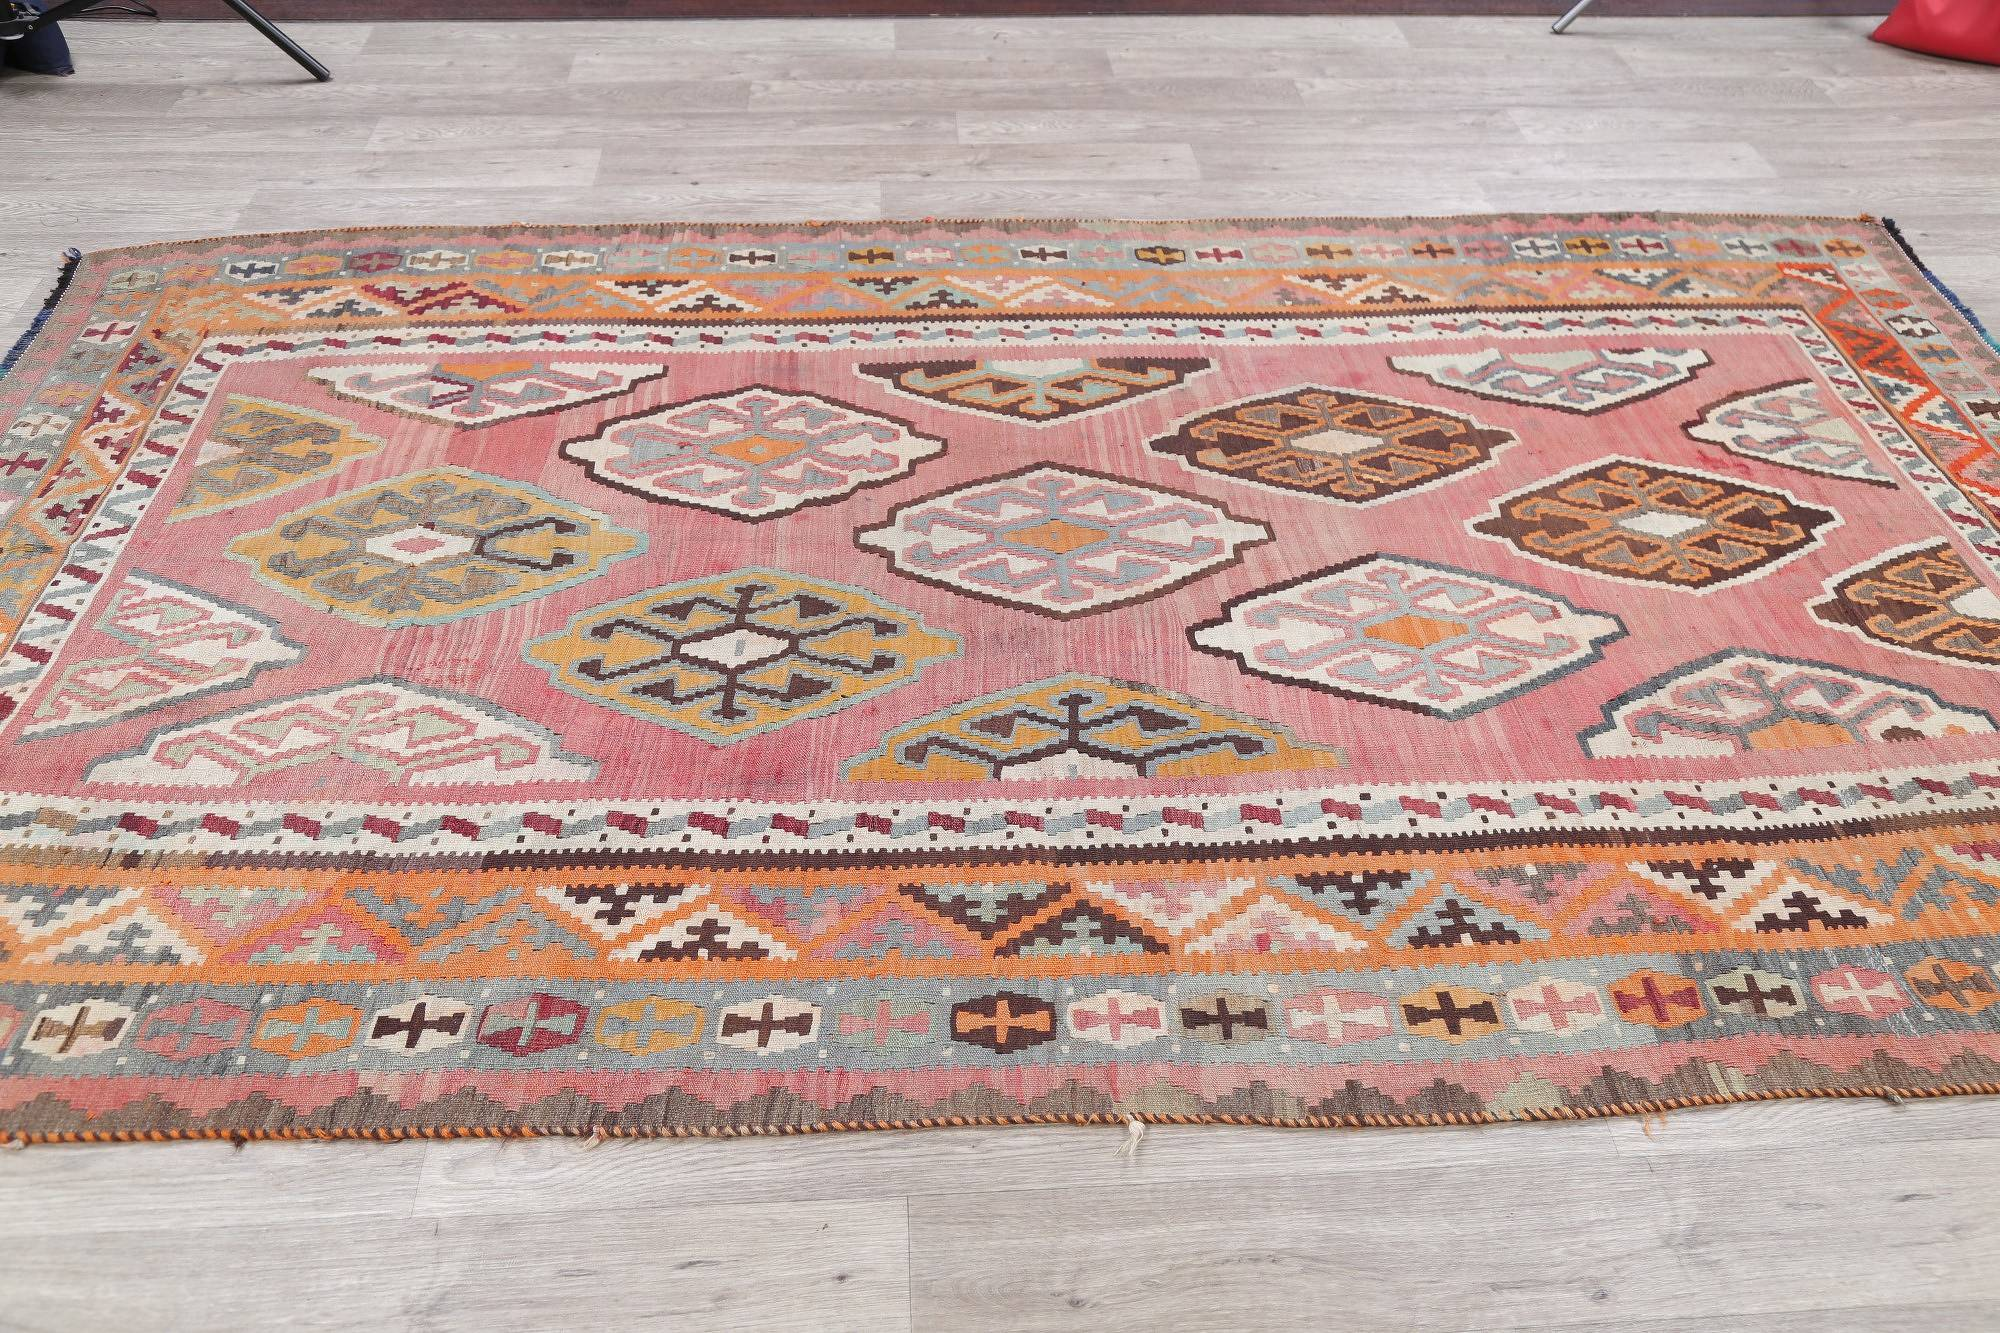 Pre-1900 Vegetable Dye Kilim Qashqai Persian Hand-Woven 5x9 Wool Rug